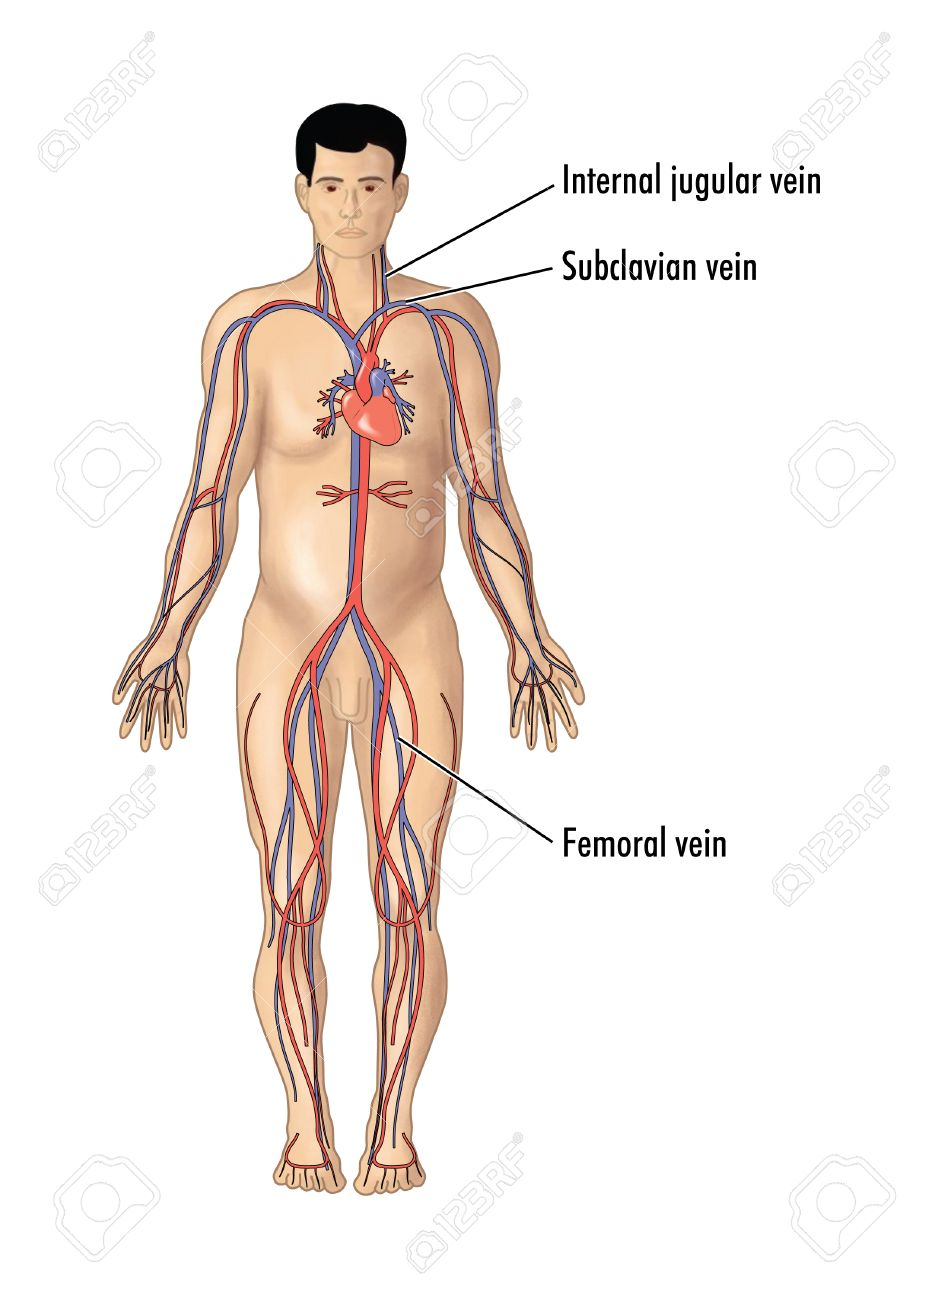 Drawing Of The Major Arteries And Veins, Focusing On The Vein ...